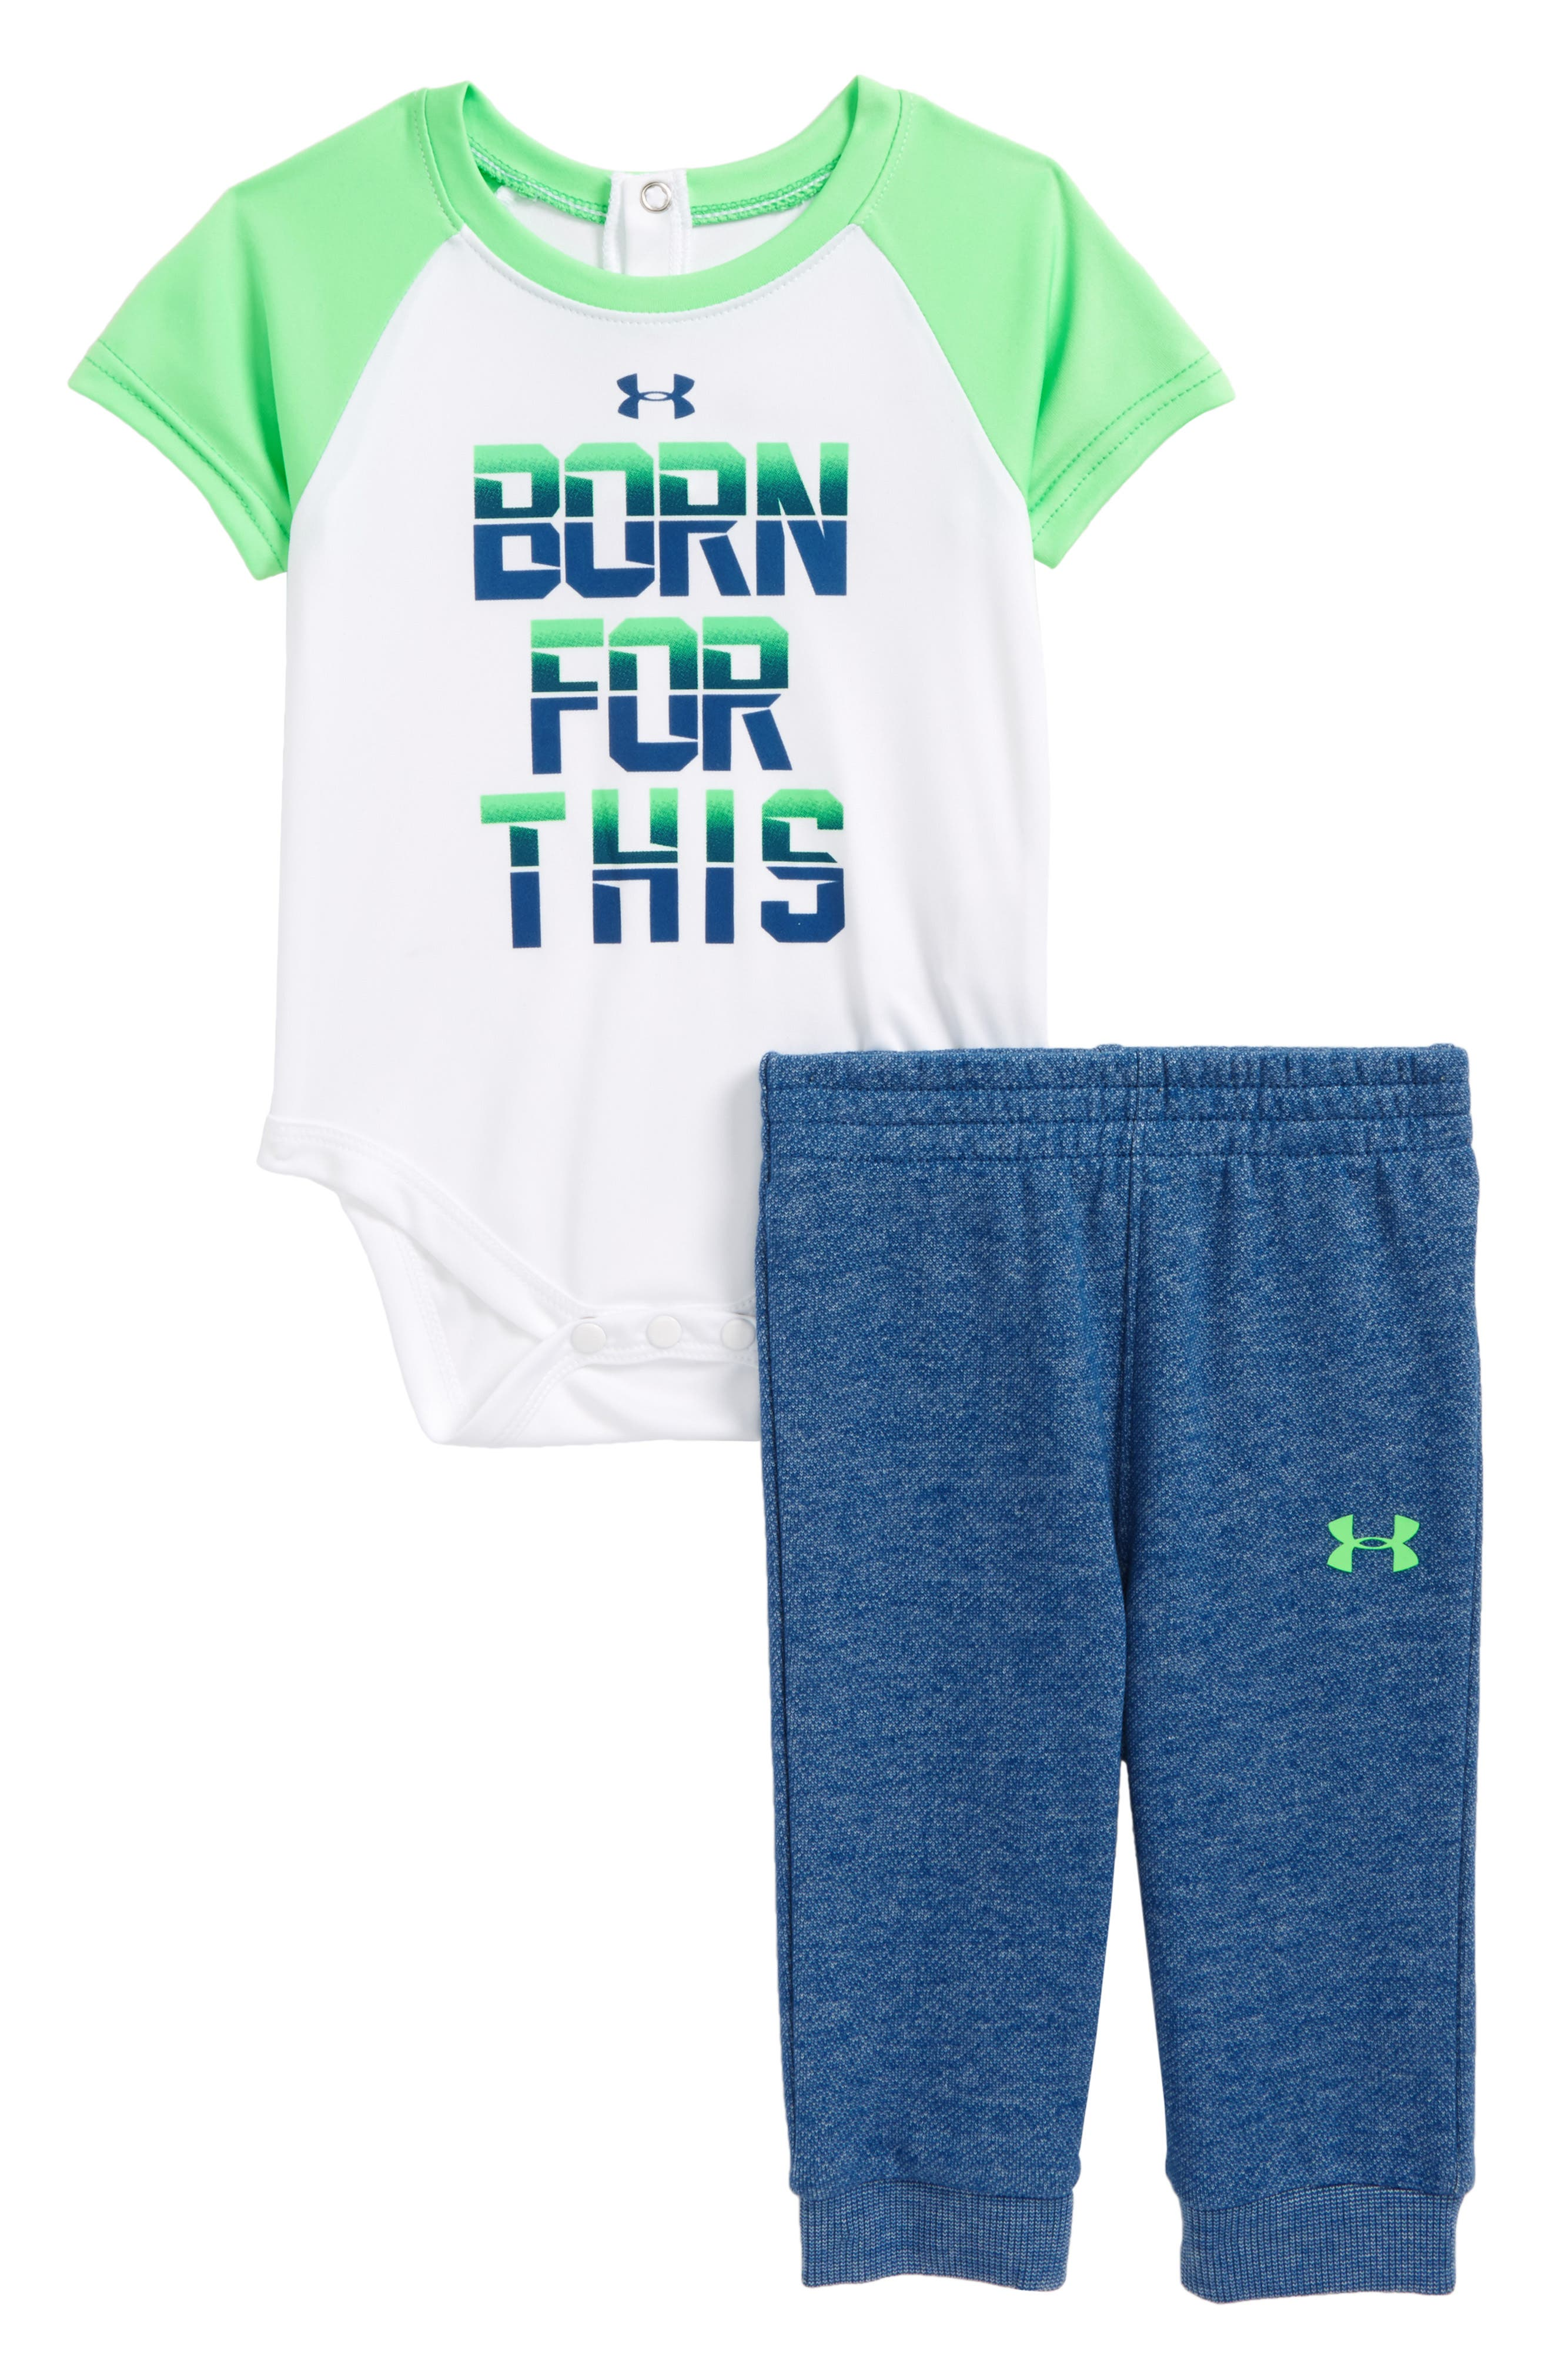 Under Armour Born For This Bodysuit & Pants Set (Baby Boys)